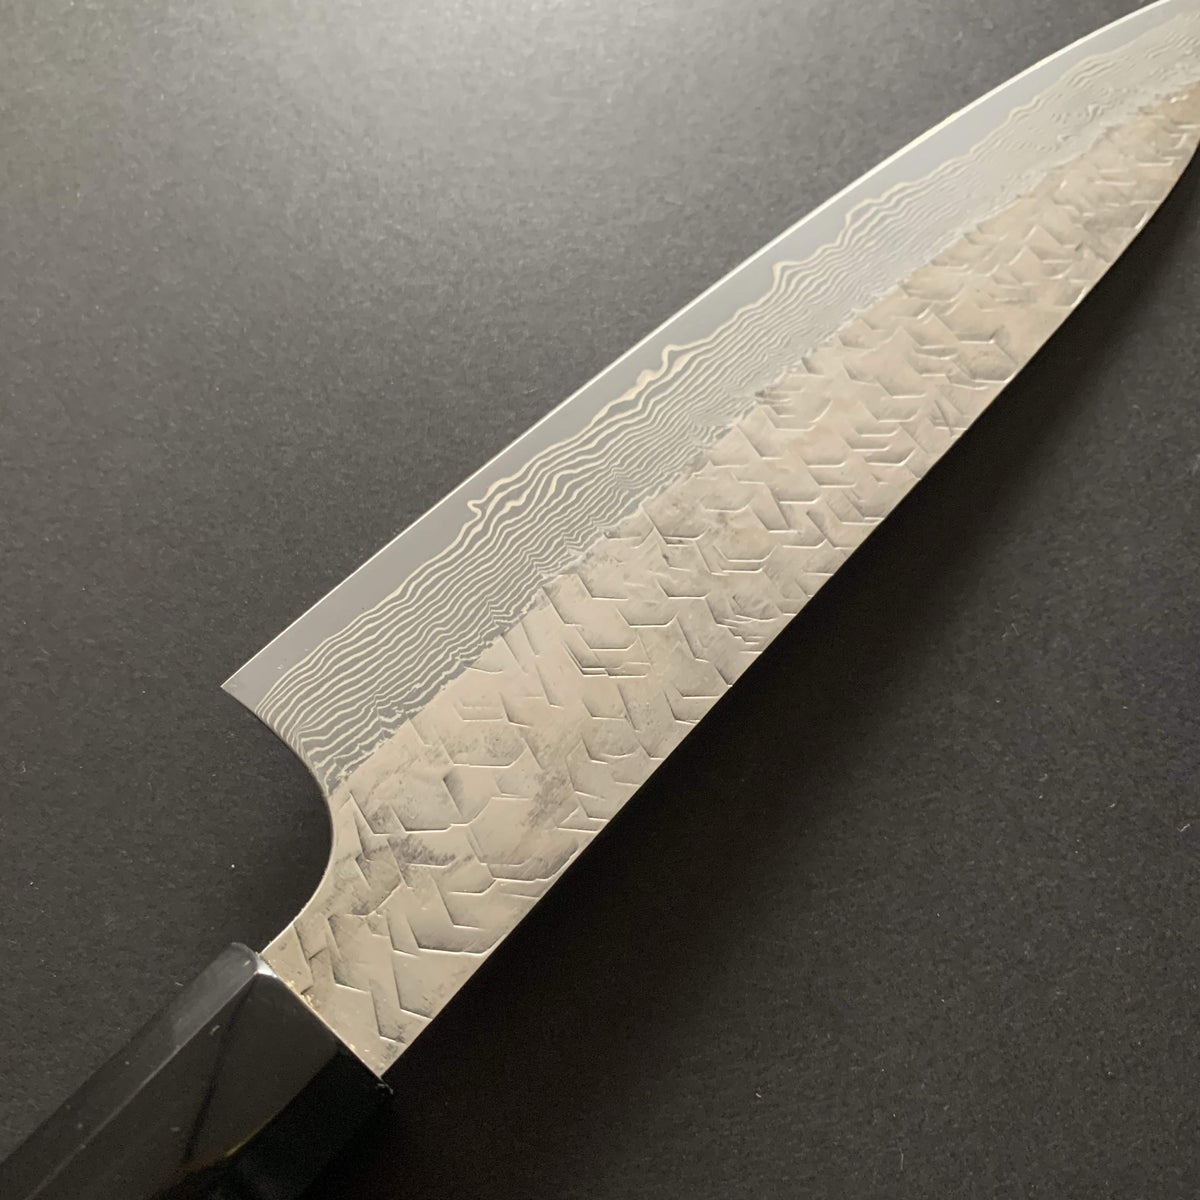 Gyuto knife, SG2 powder steel, tsuchime and damascus finish - Nigara